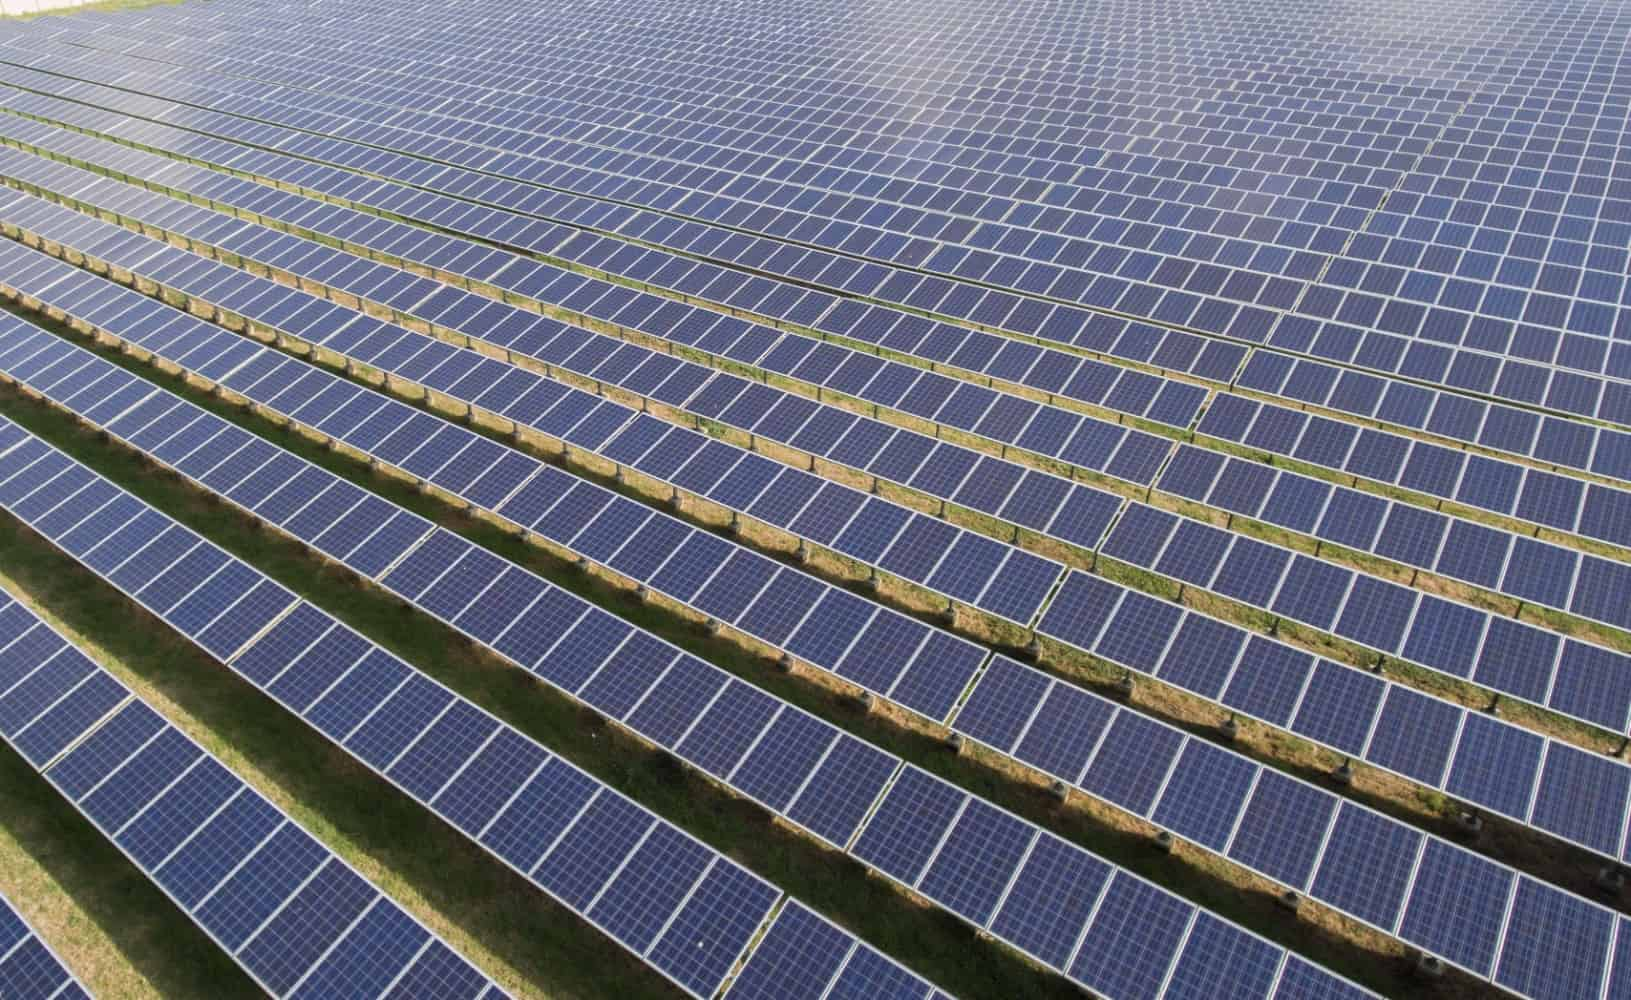 Shell starts work on large-scale solar farm